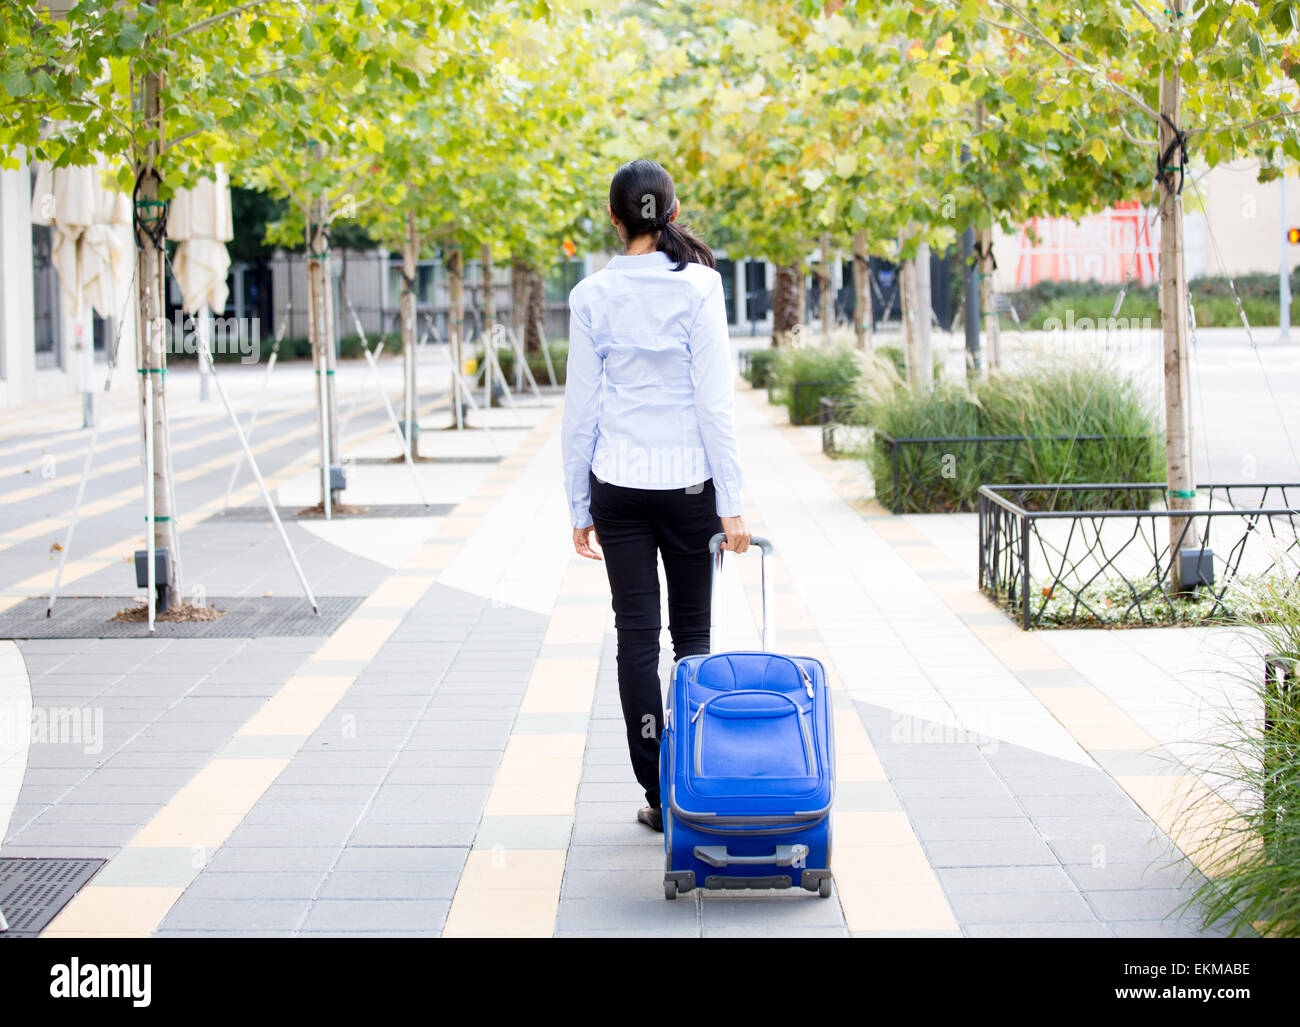 Closeup abstract backside view portrait of woman in light blue shirt carrying luggage, walking through gray sidewalk - Stock Image